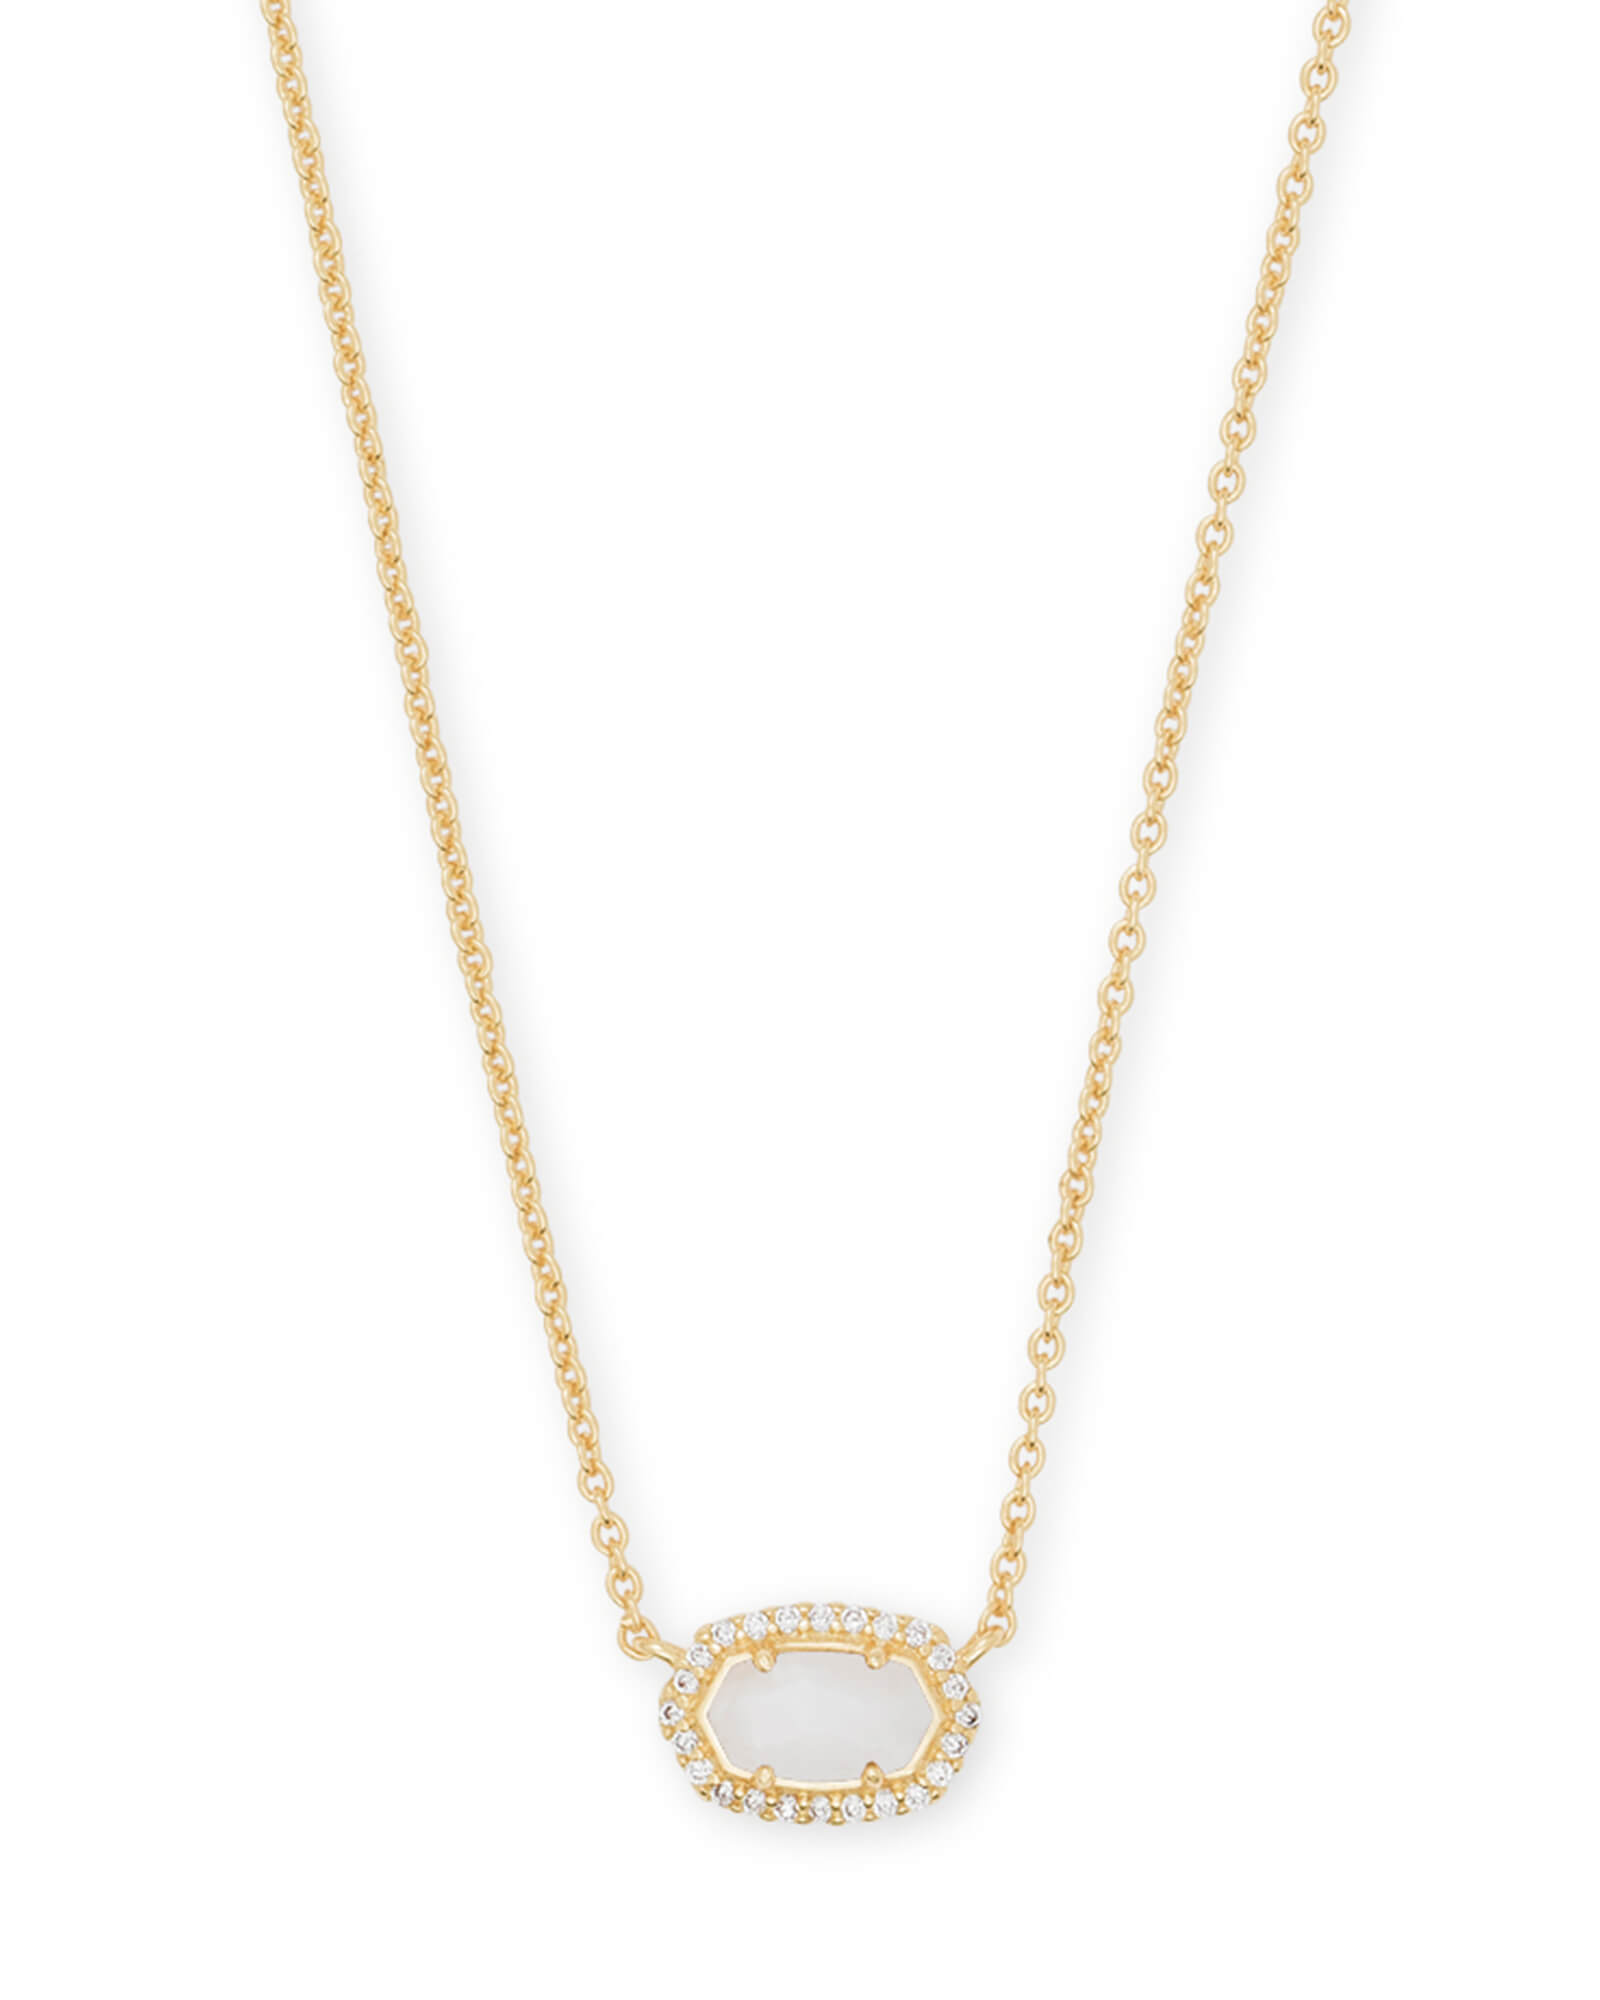 Chelsea Gold Pendant Necklace in White Pearl